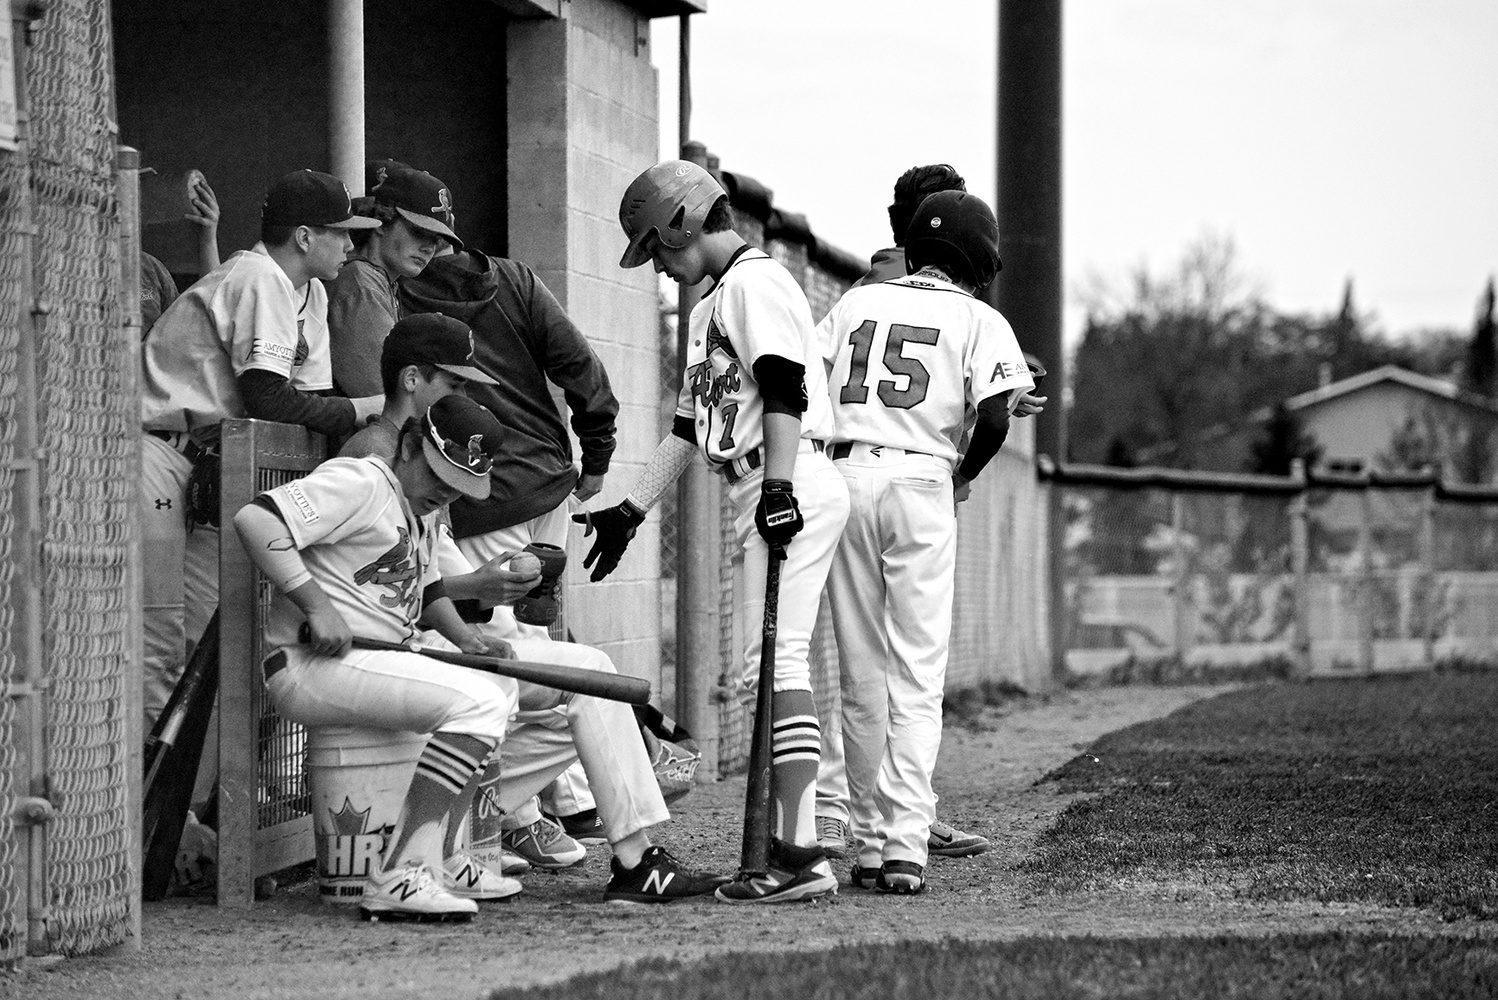 Game Time by Mike Ofstedahl